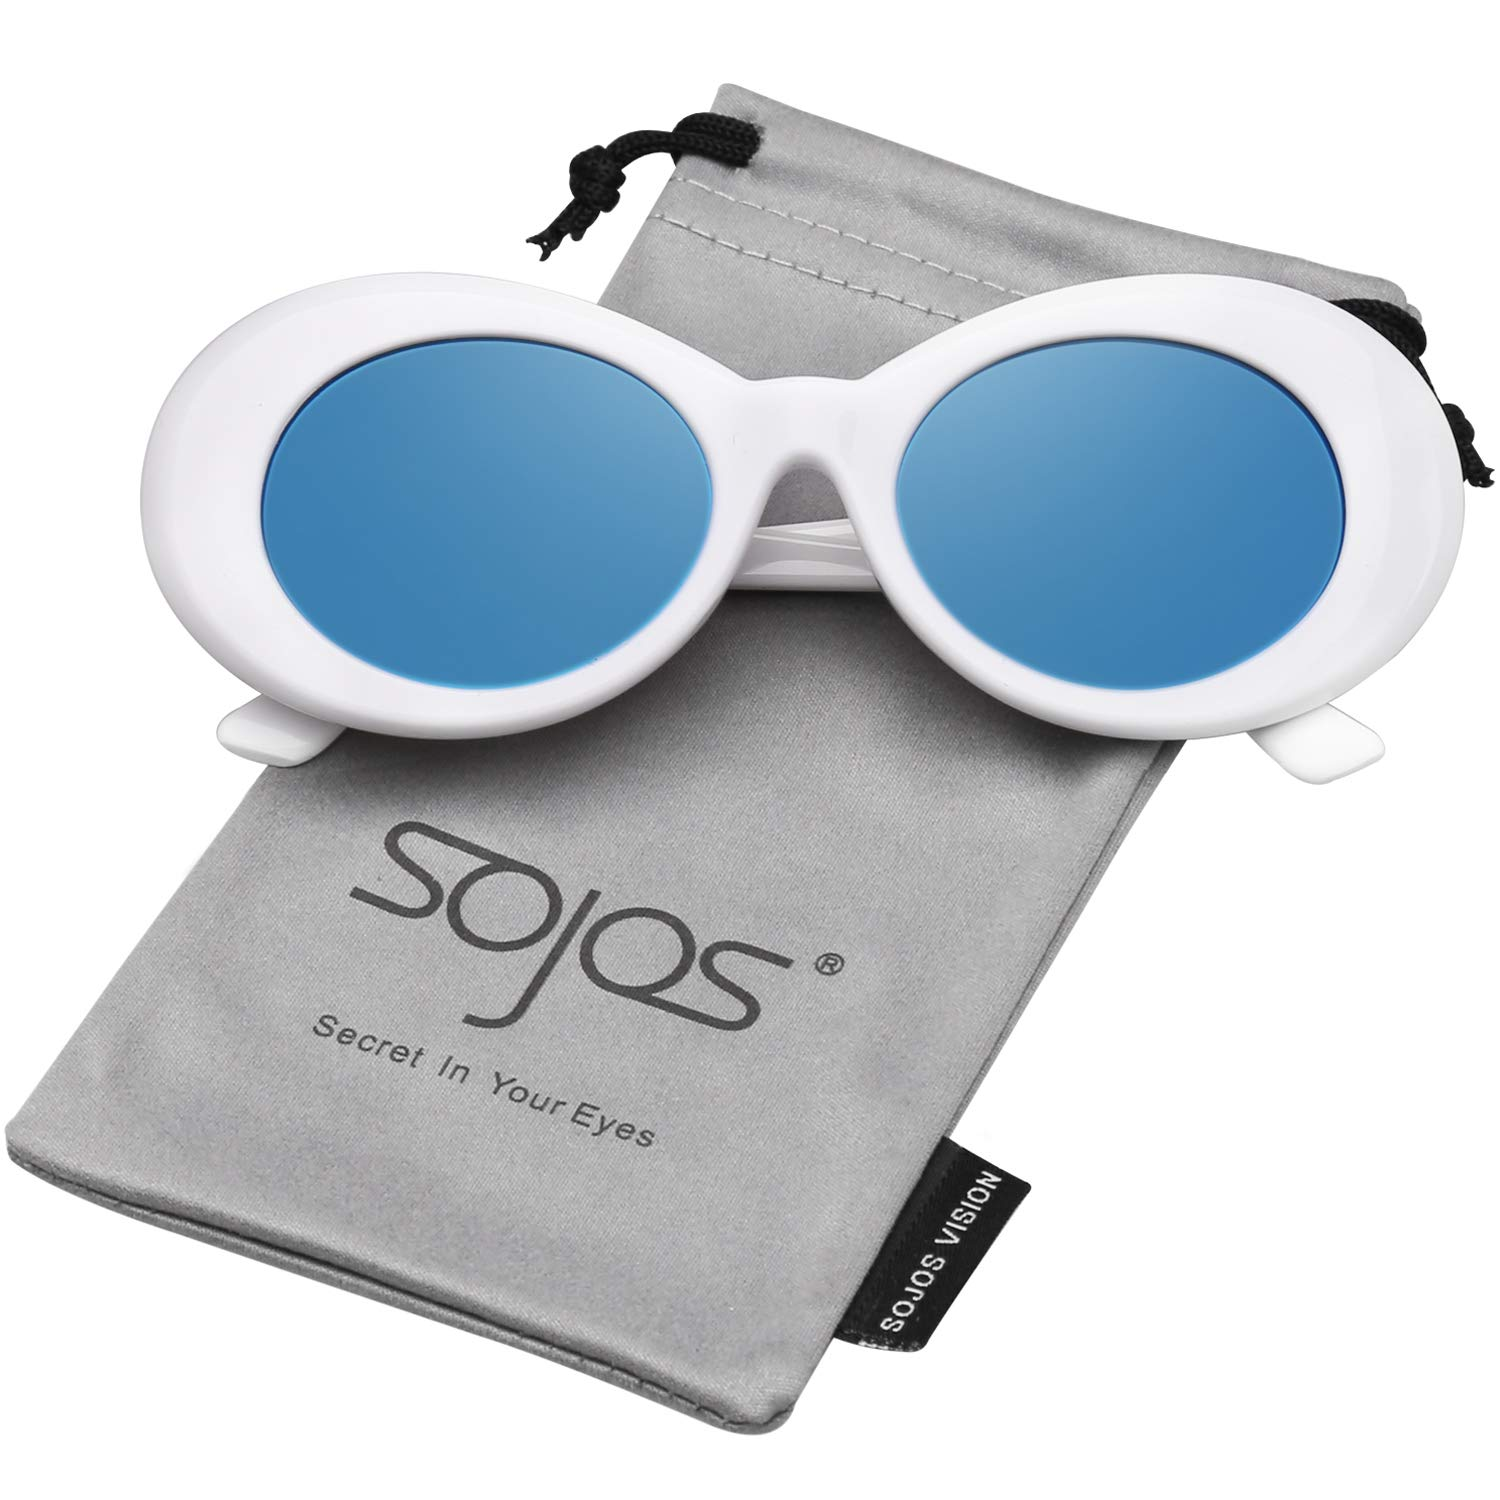 92736d3833 SOJOS Clout Goggles Oval Mod Retro Vintage Kurt Cobain Inspired Sunglasses  Round Lens SJ2039 with White Frame Blue Mirrored Lens